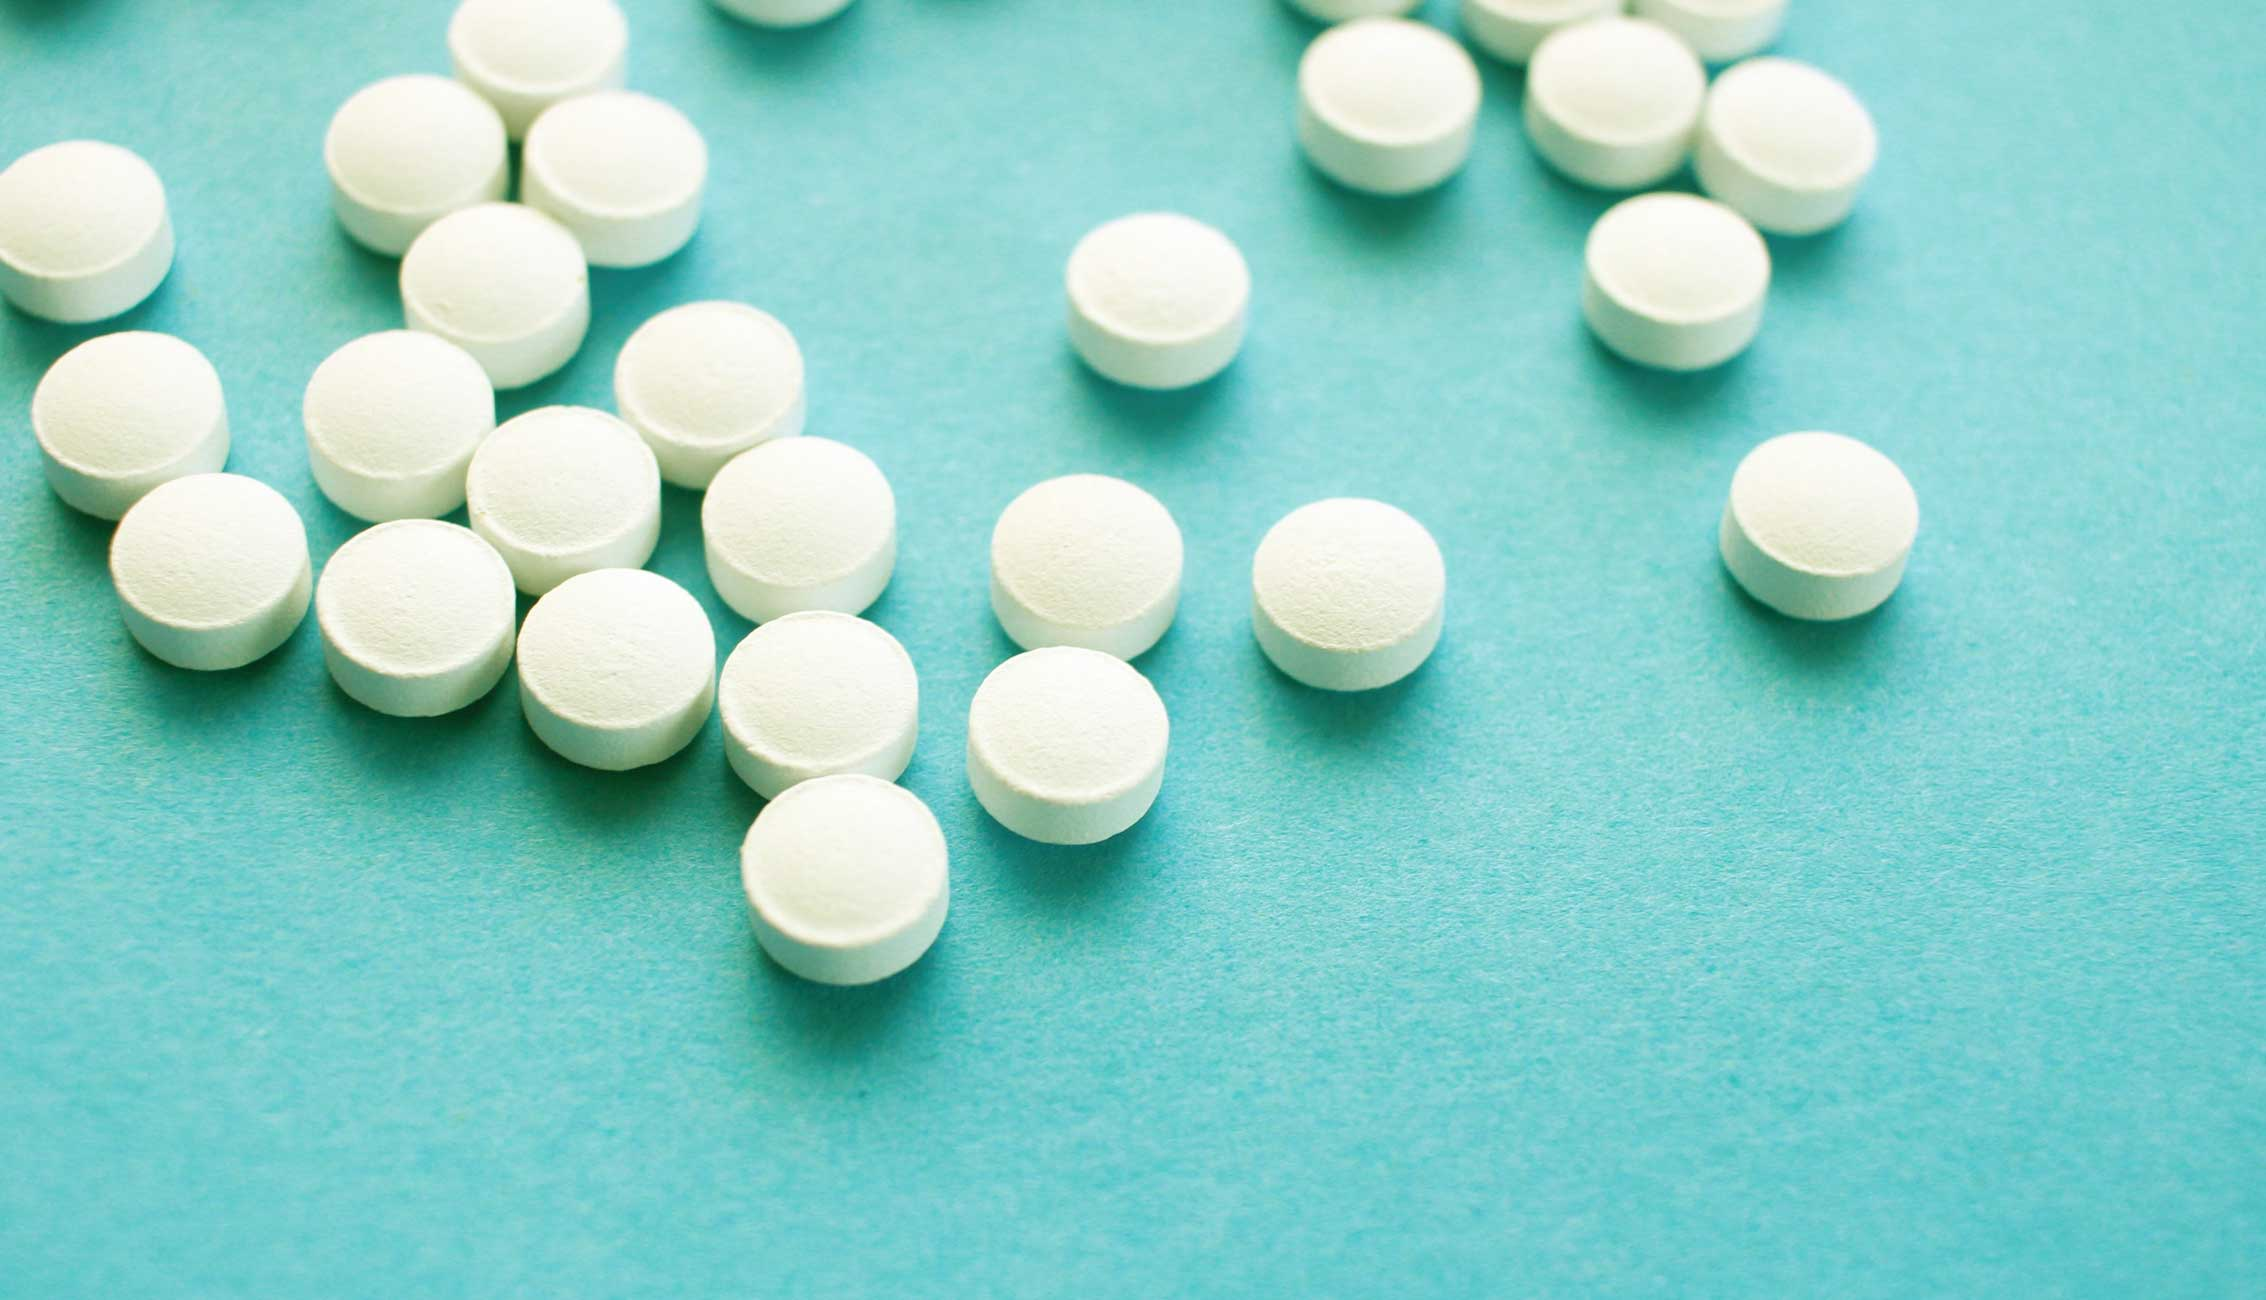 Tramadol Ultram for pain: side effects, dosages, treatment - I Need Medic